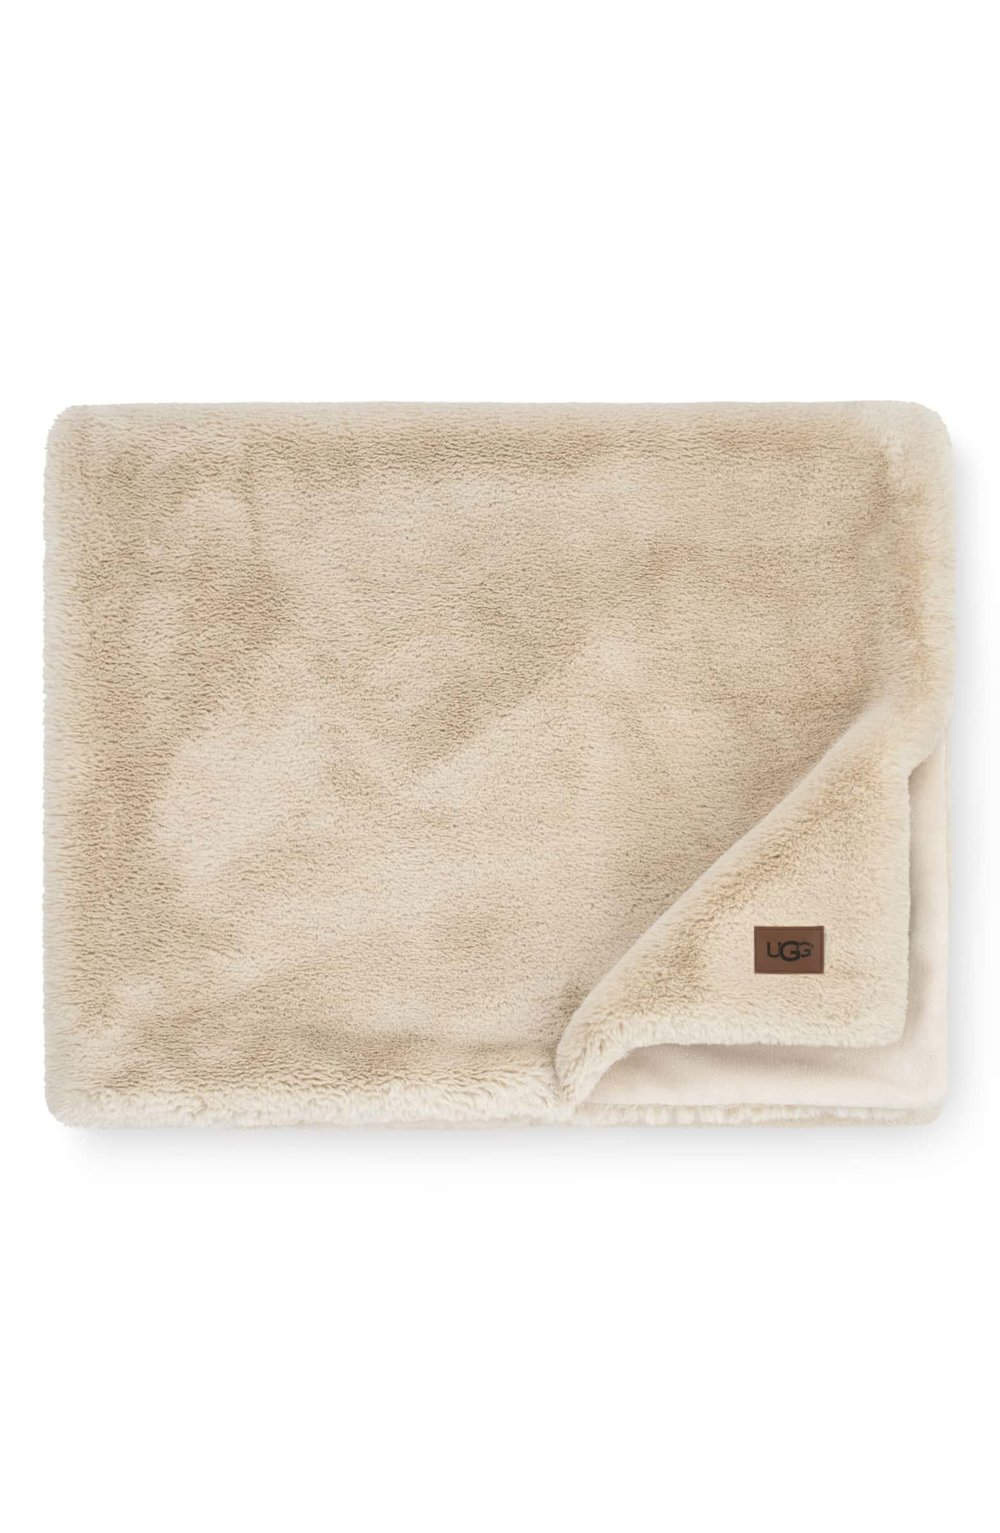 UGG® Coastline Plush Throw - I have used this throw and it's so ridiculously soft. It's $98 and worth every penny.